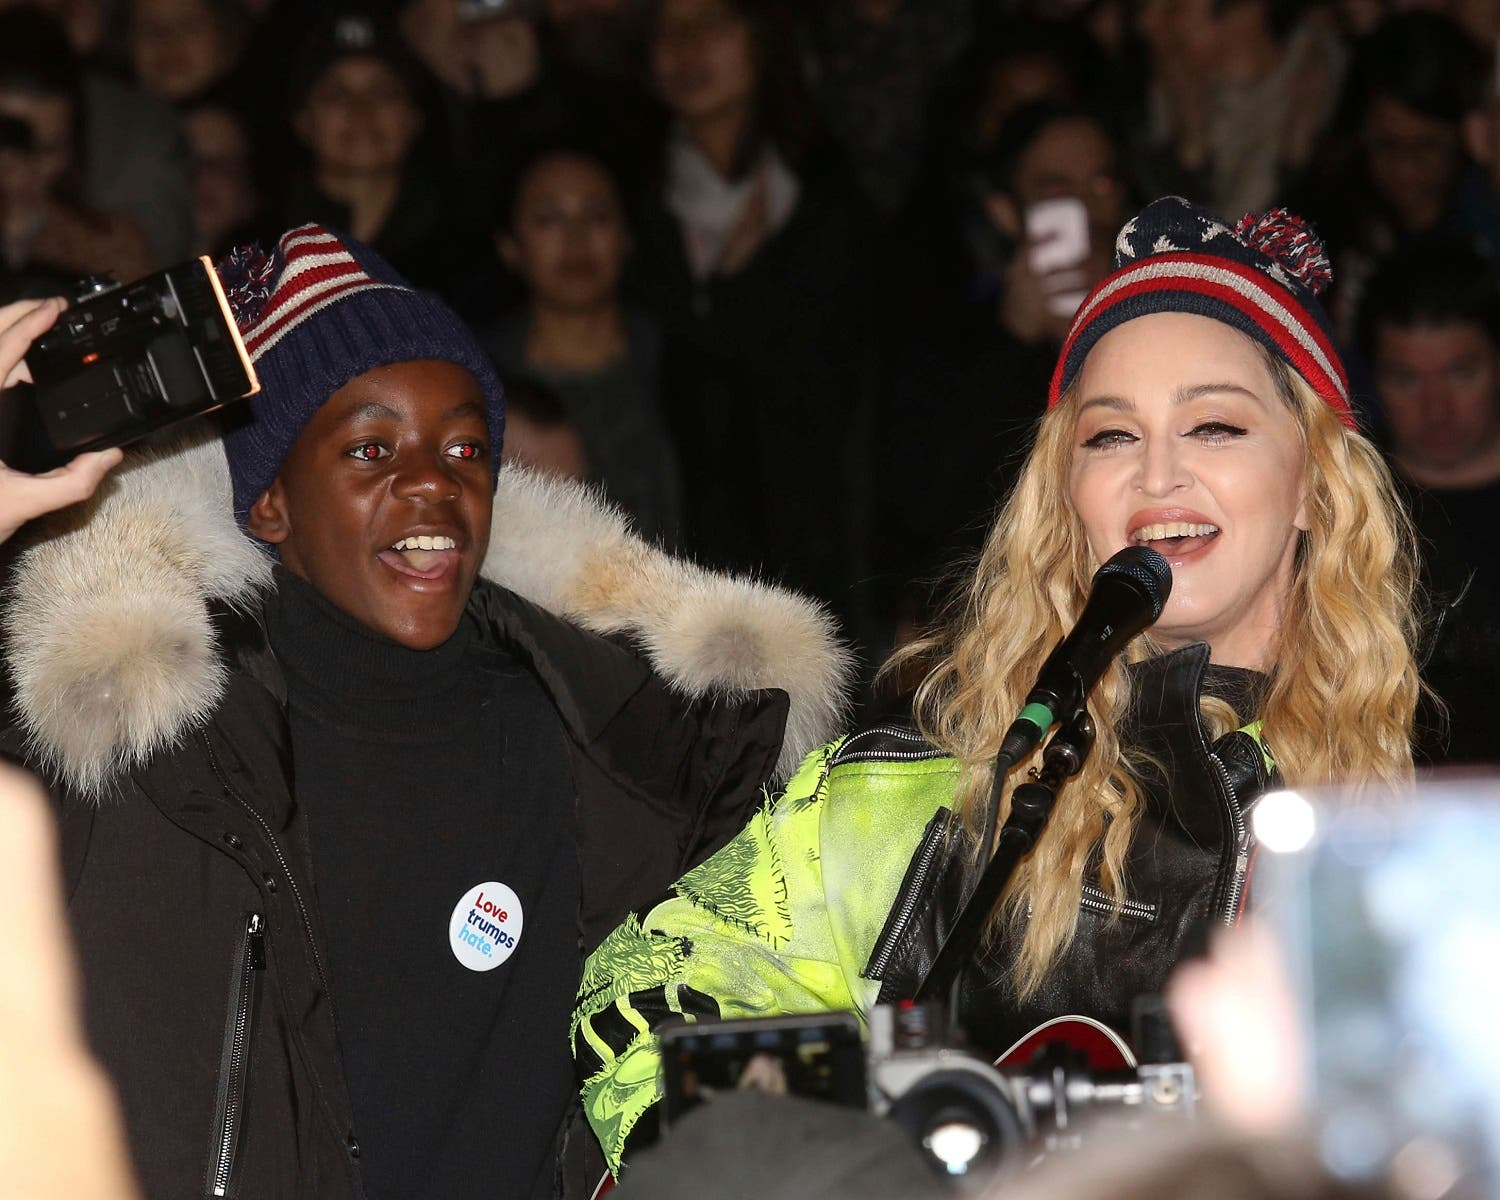 Madonna, right, and her son David Banda perform in support of the Hillary Clinton campaign at Washington Square Park on Monday, Nov. 7, 2016, in New York. (AP)